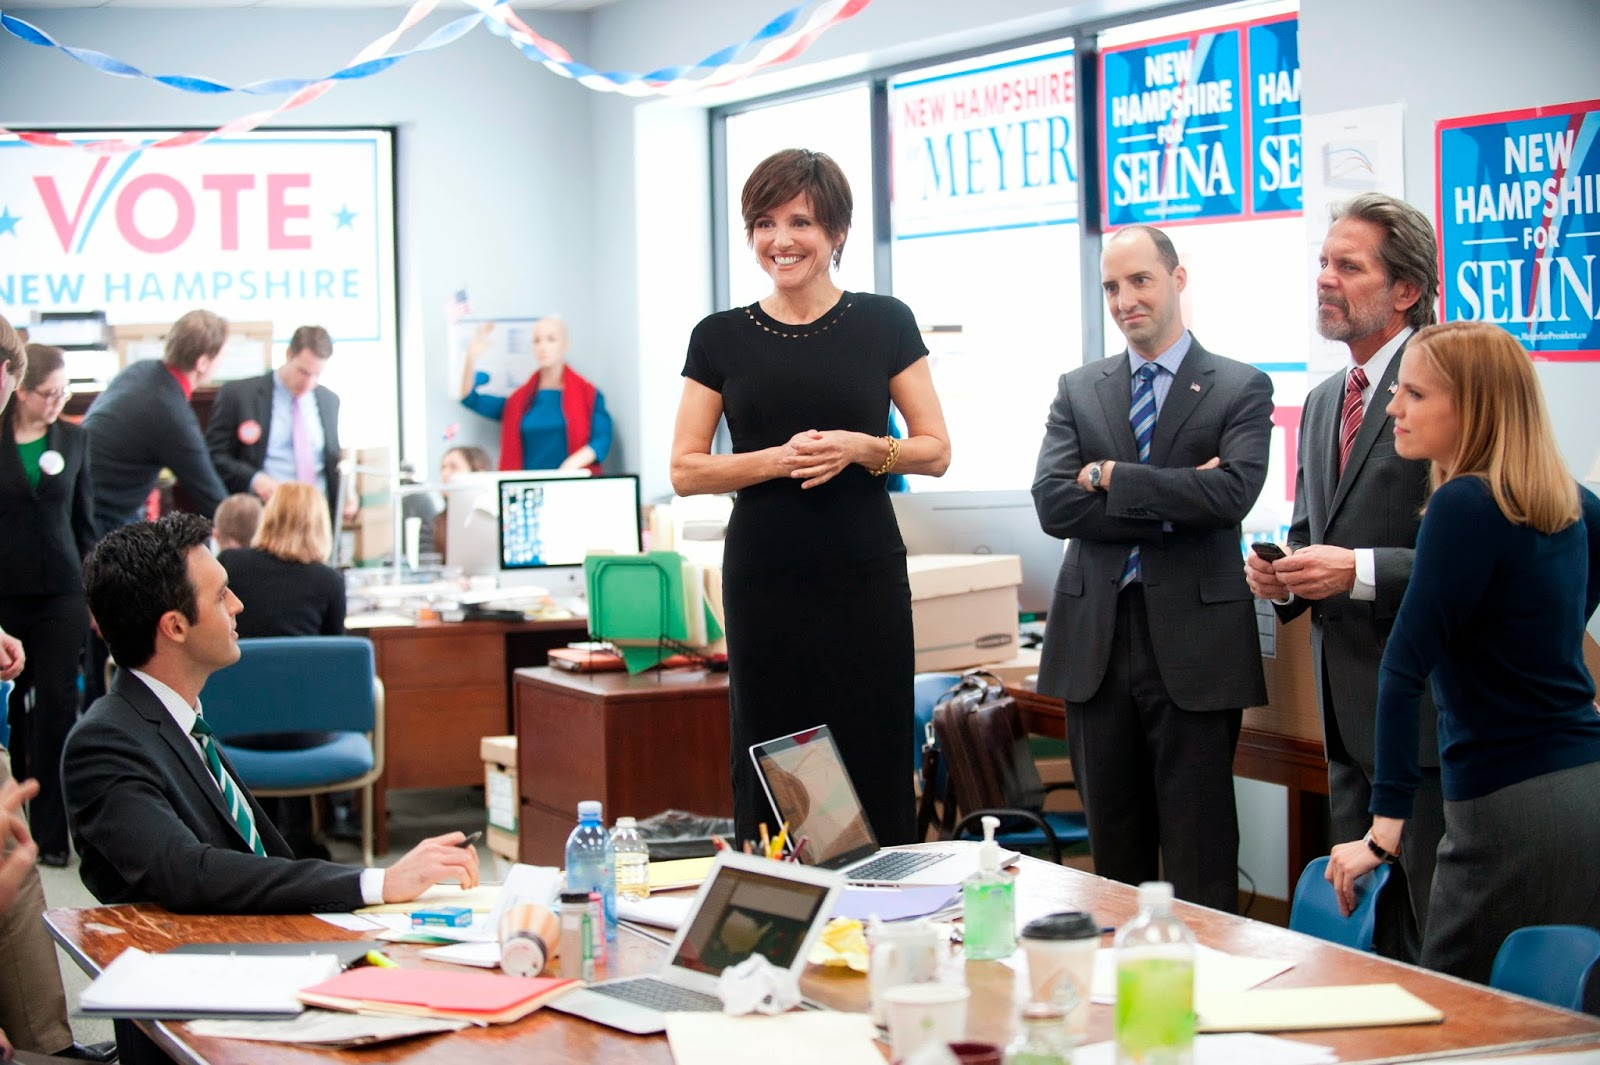 Veep - Episode 3.09 - Crate - Sneak Peek + Promotional Photo